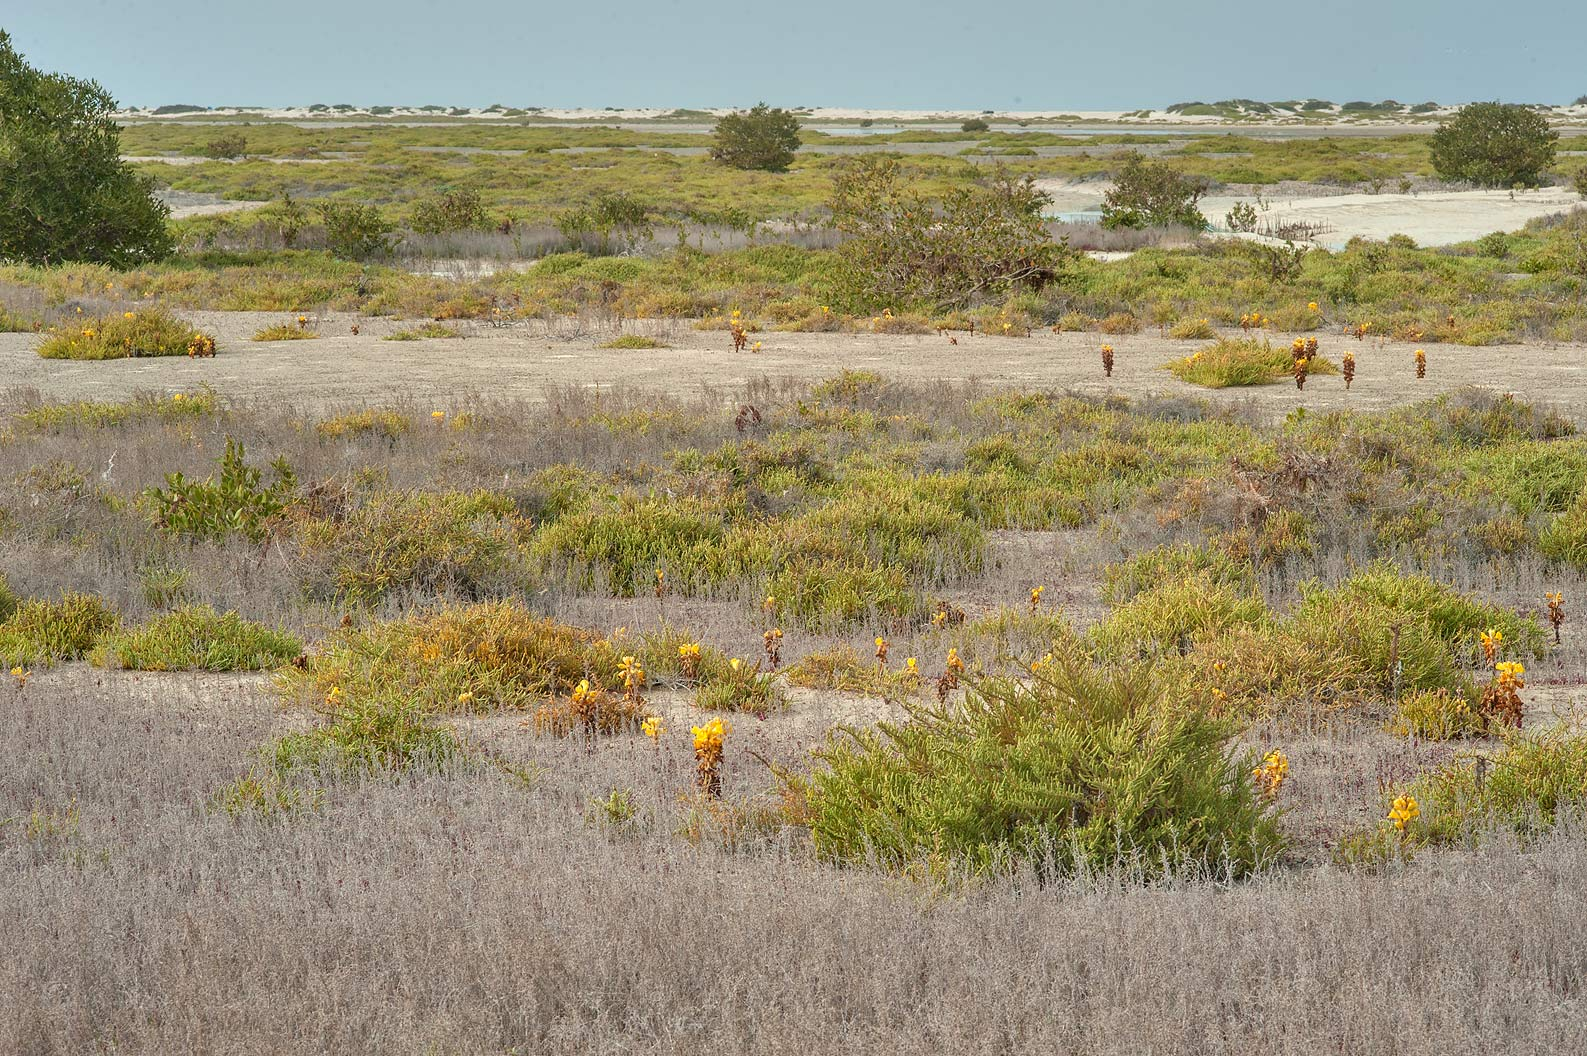 Salt marshes near Umm Tays Island in Madinat Al Shamal area. Qatar